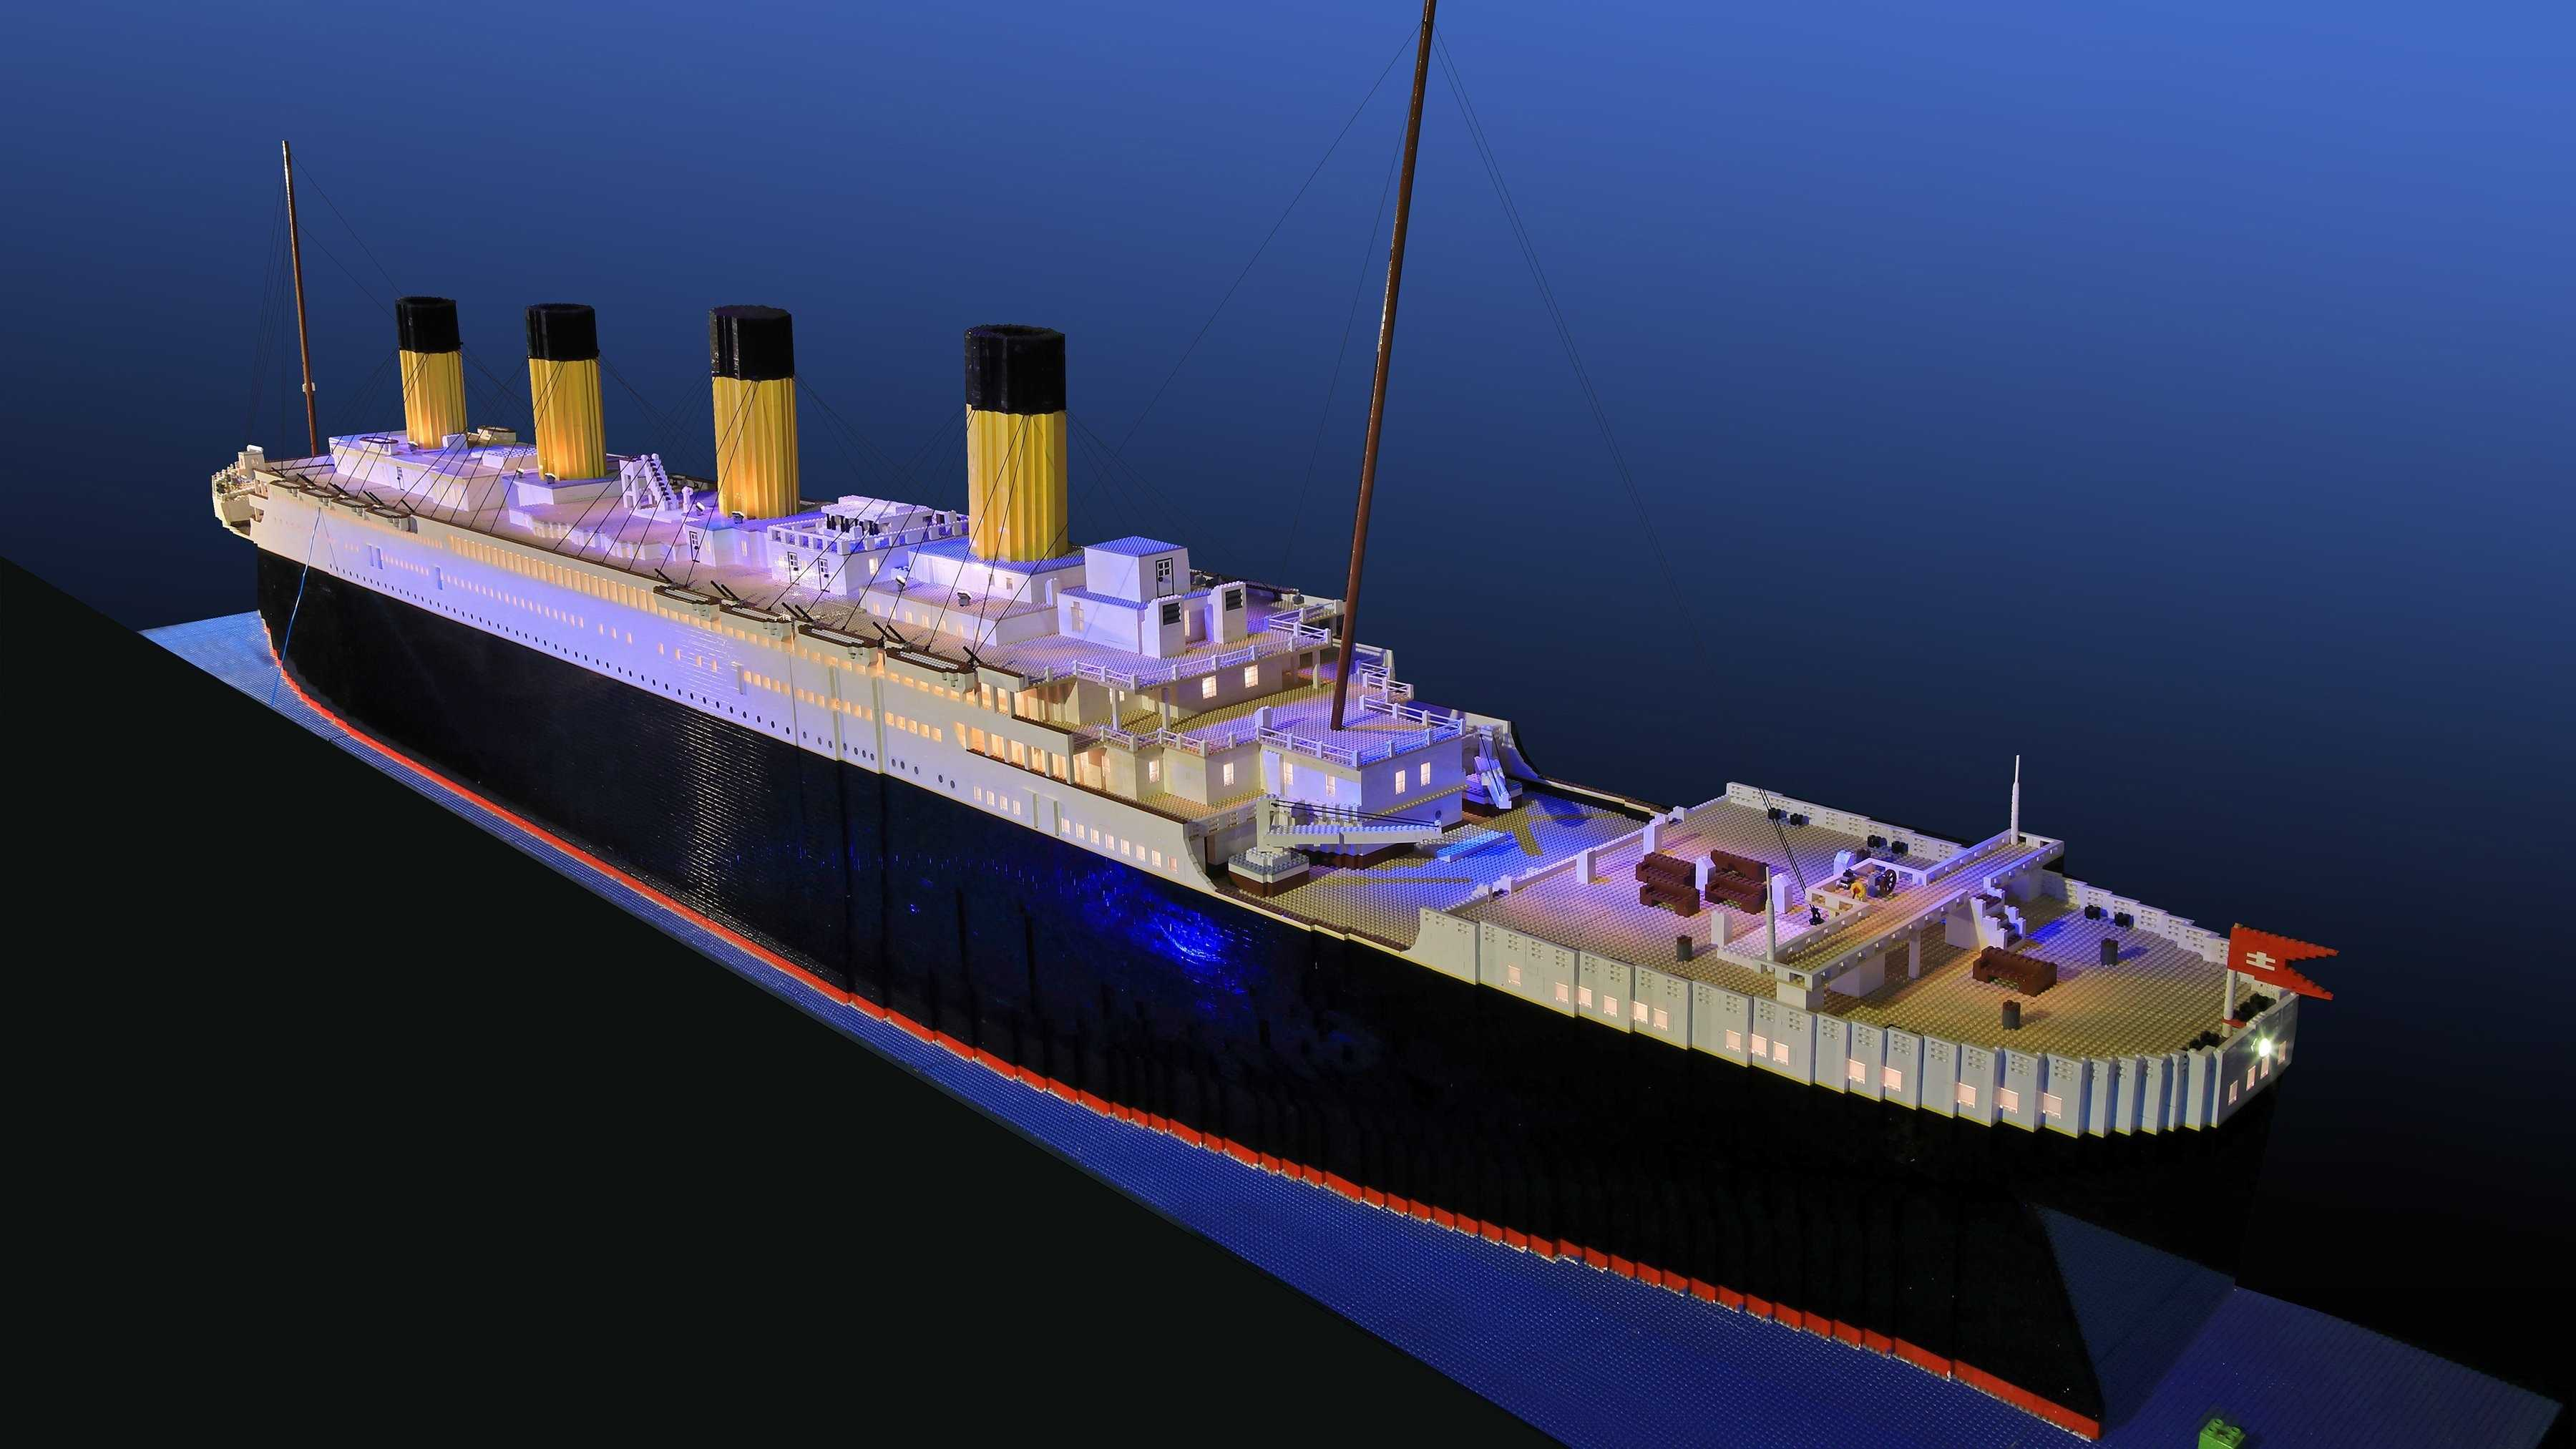 Brynjar Karl Bigisson's Titanic replica is 26 feet long and 5 feet tall.